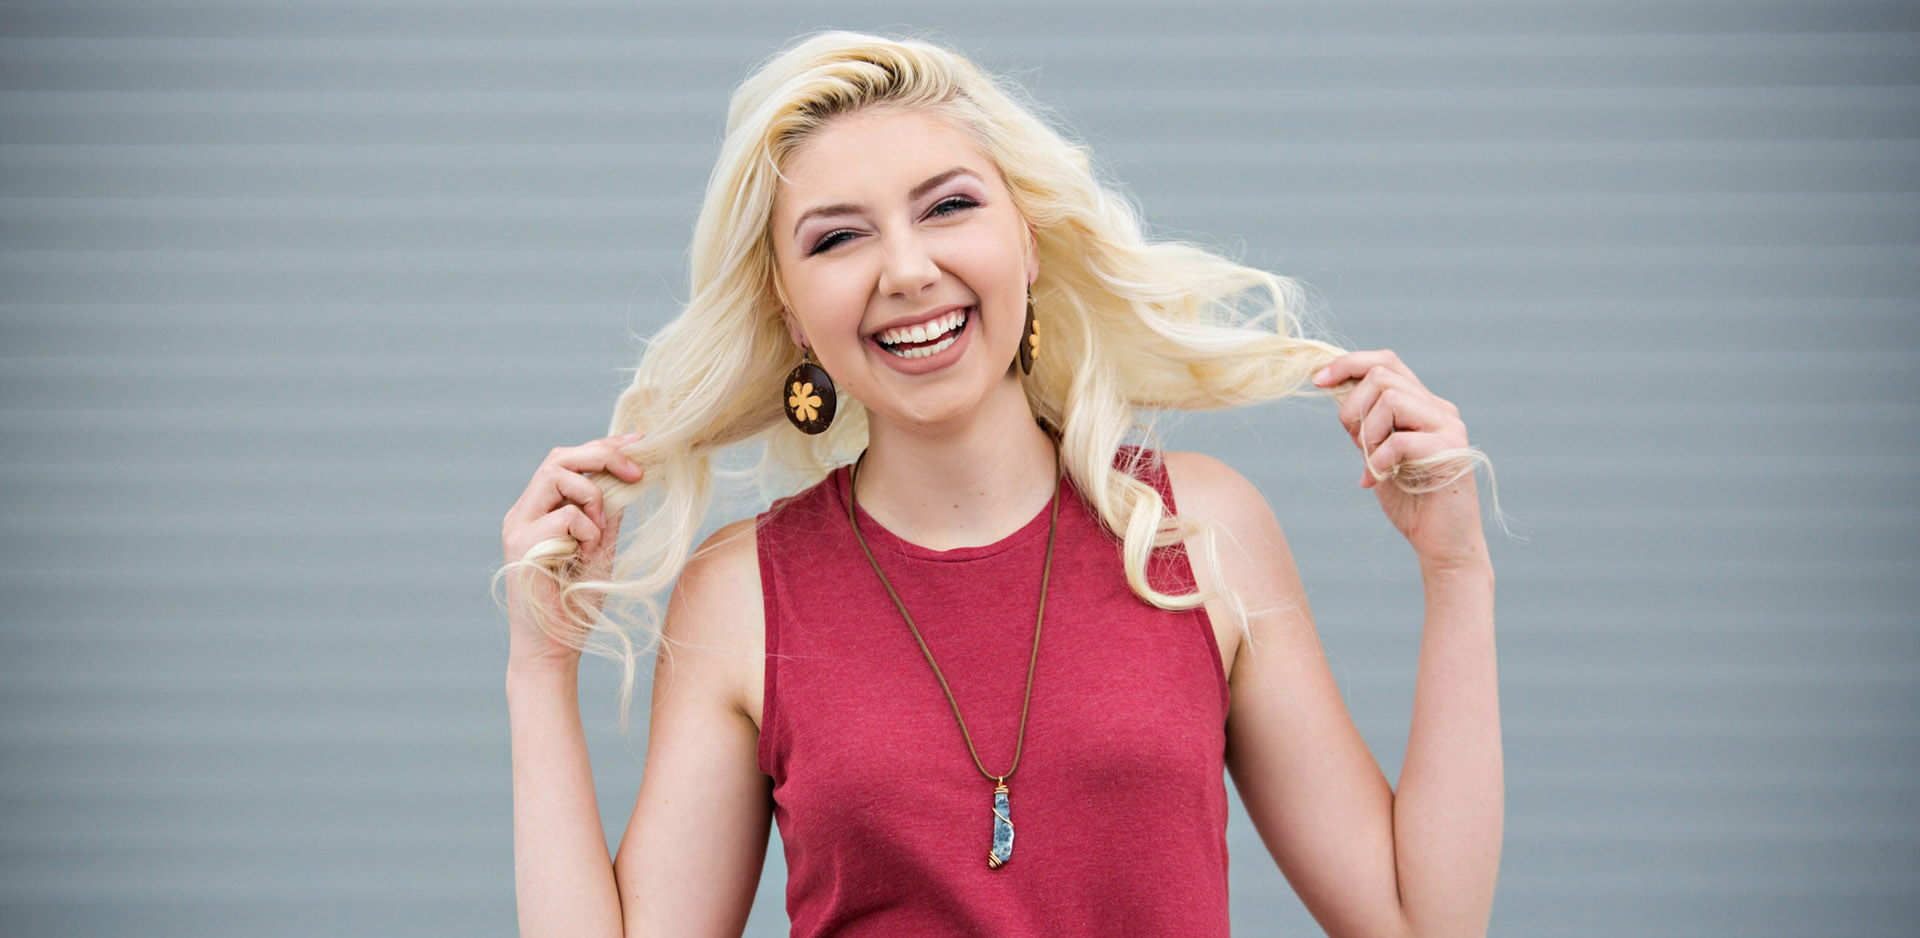 Blonde girl in red shirt laughing in front of gray wall